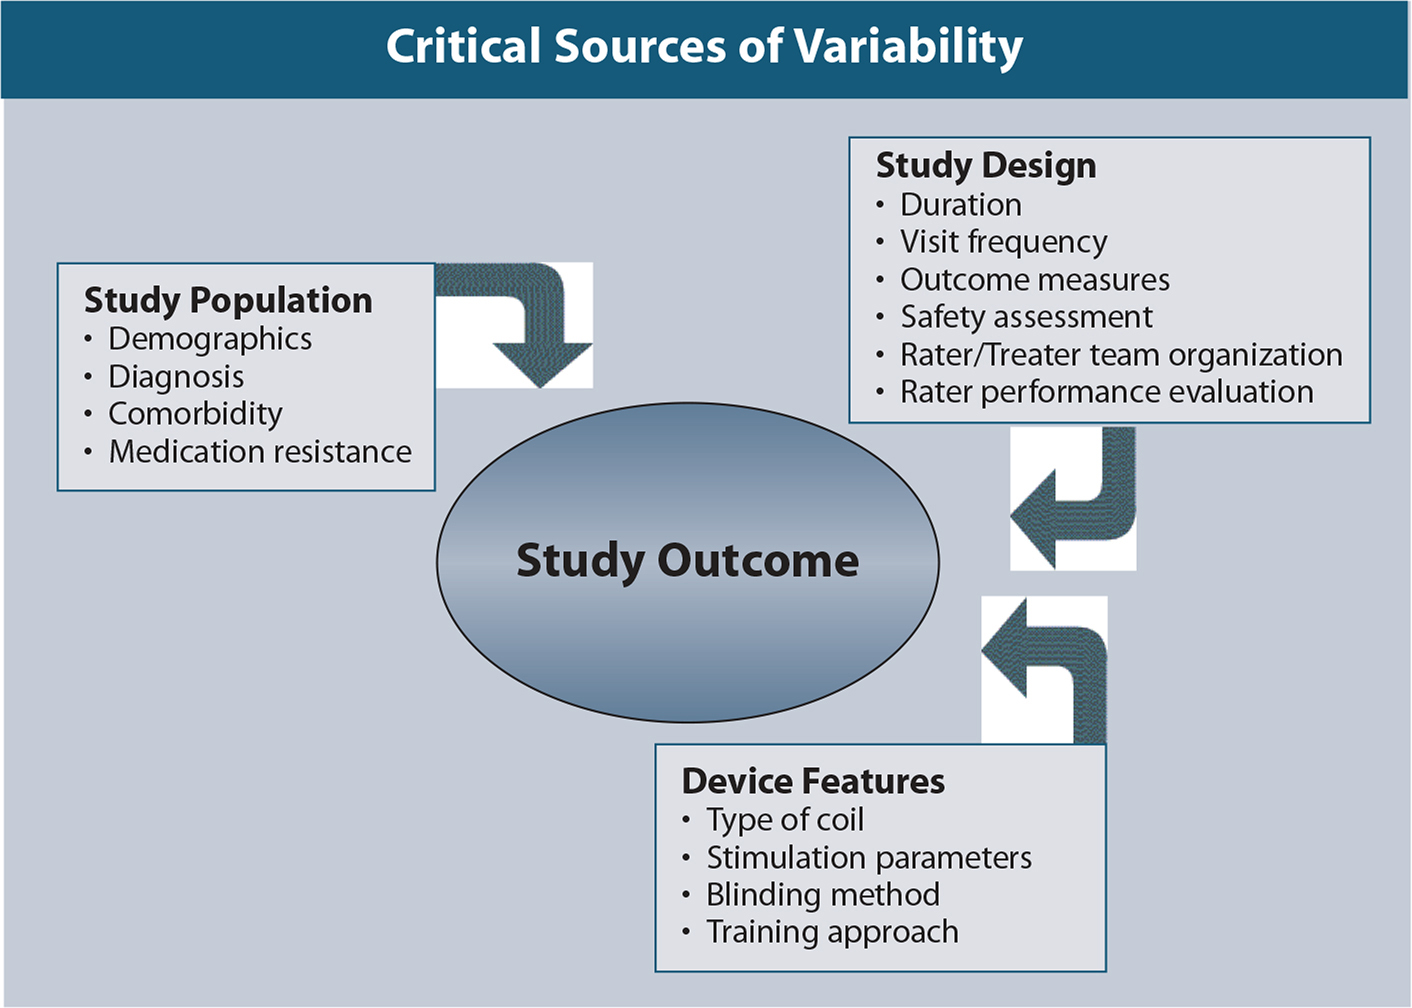 Critical sources of variability in the clinical development of rTMS.